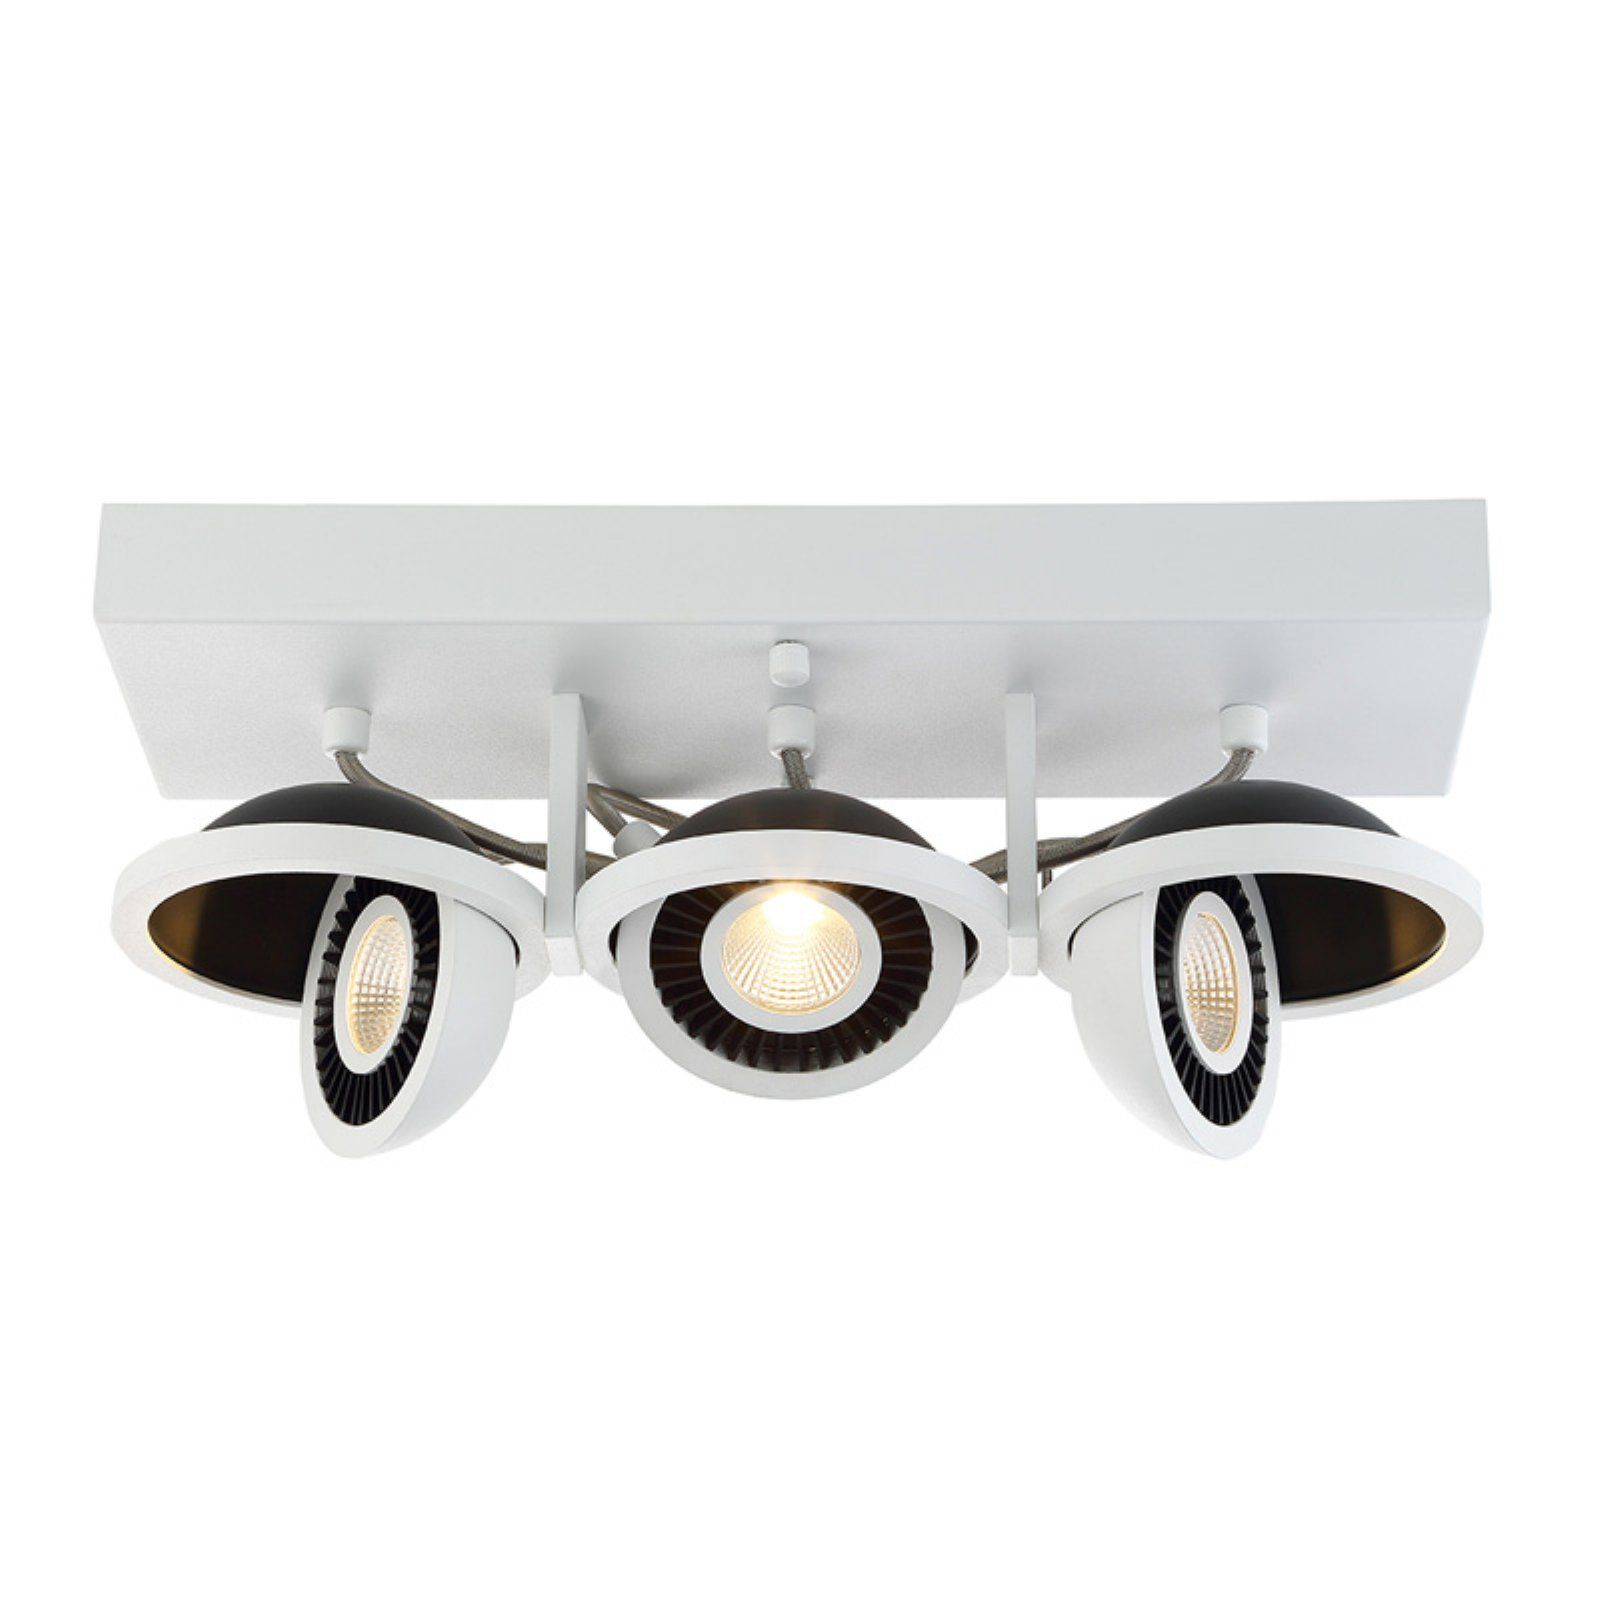 Eurofase Vision 29488 Track Lighting Products In 2019